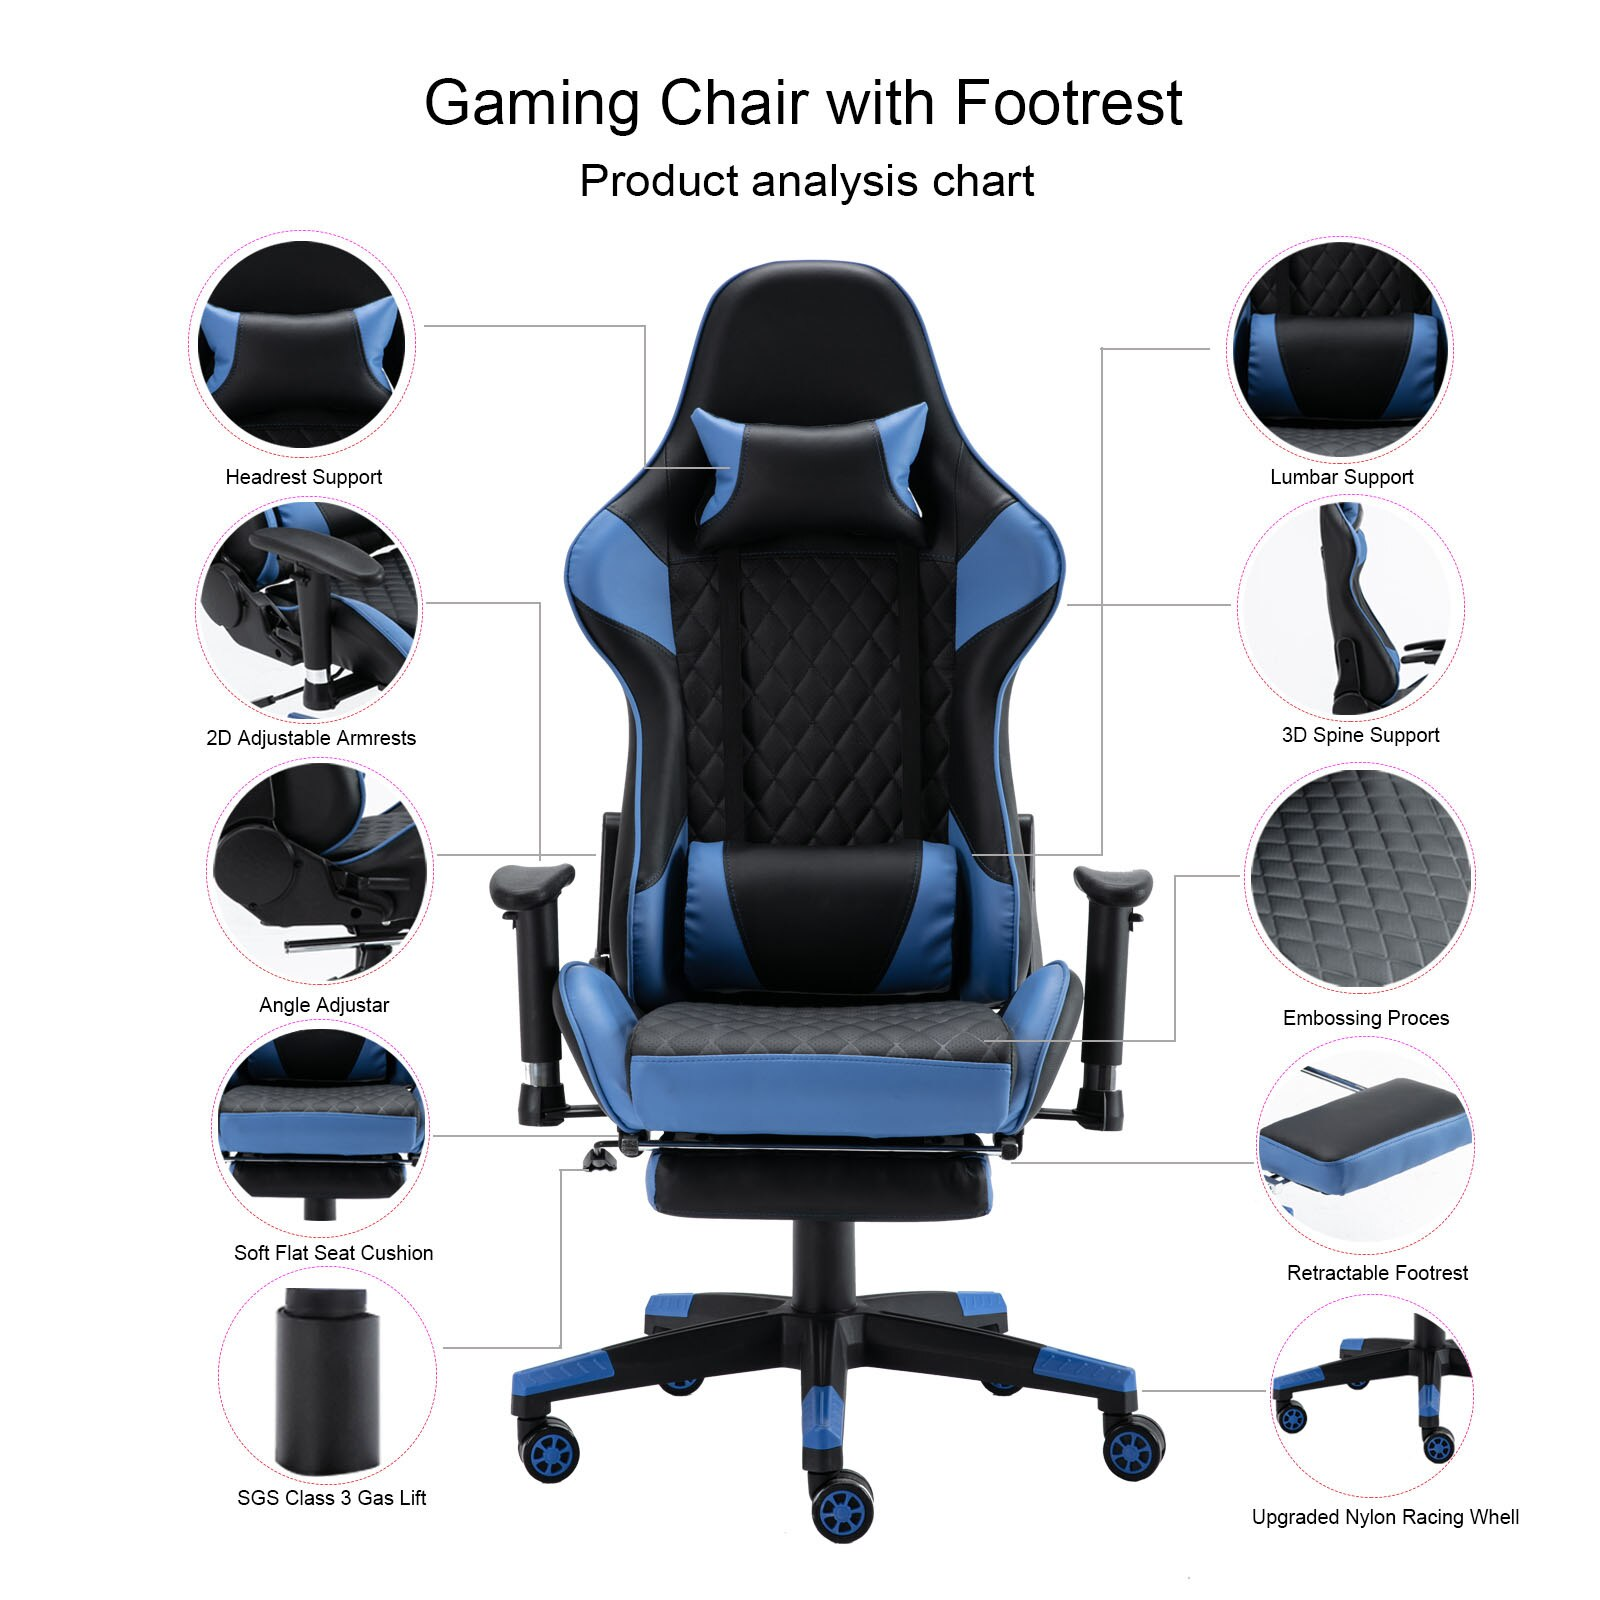 H5c637fdf5e2044a4860599d8ce8c5f3ay - Gaming Chair Computer Armchair Adjustable Armrest And Footrest PVC Household Office Chair Ergonomic Computer Gamer Chair